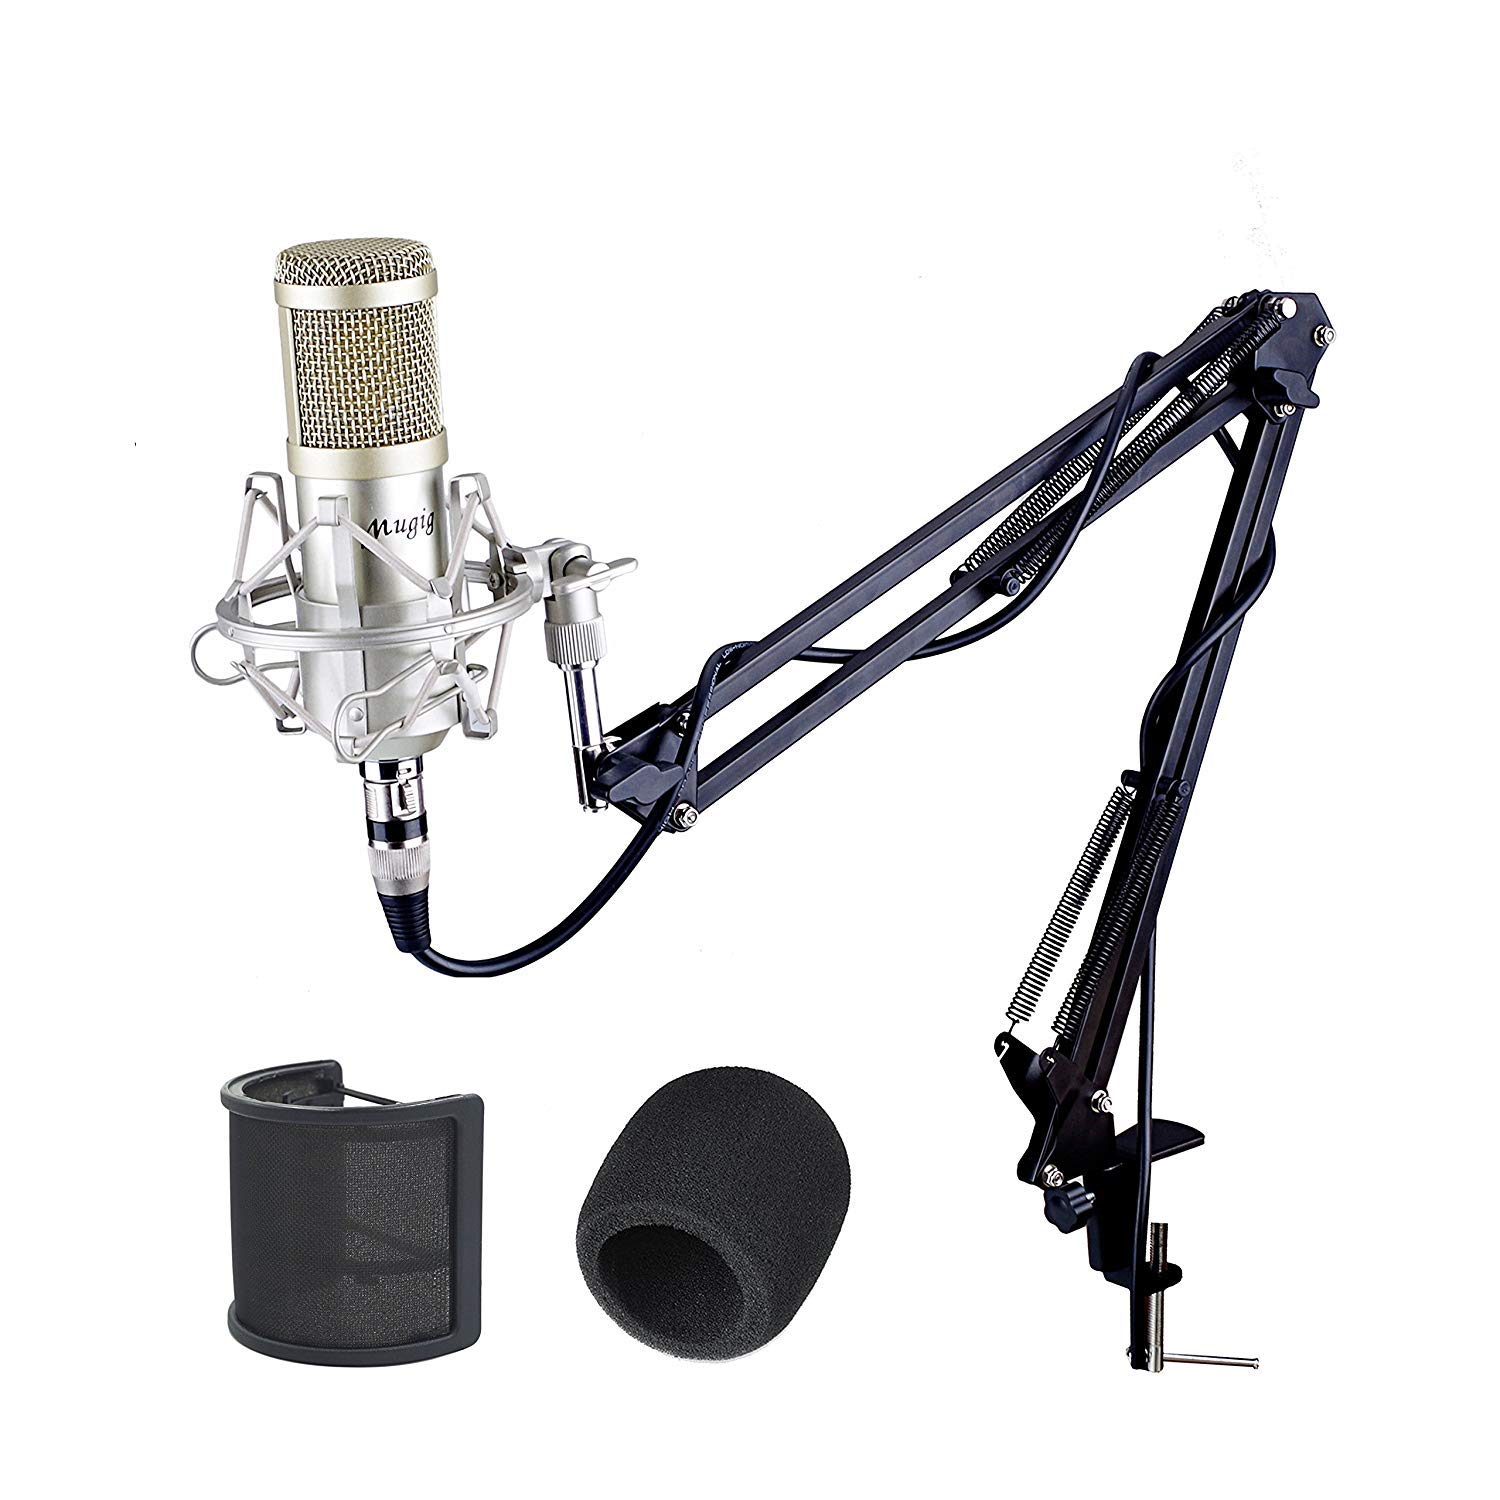 Mugig Condenser Microphone, Professional Studio Microphone with Shock Mount, Adjustable Microphone Stand, XLR Cable and Pop Filter for Recording, Voice Overs, Podcast, Games and YouTube Videos